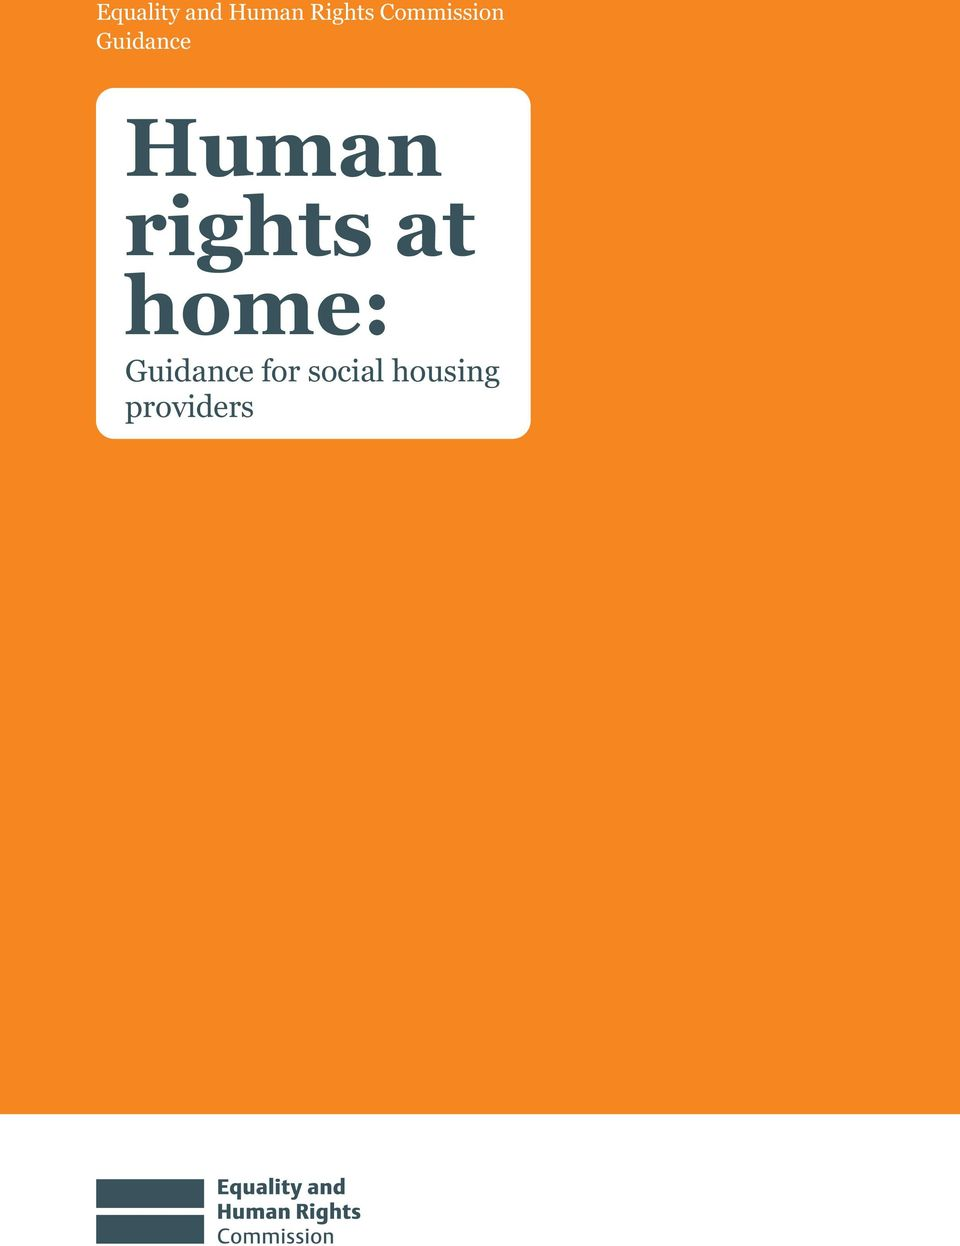 rights at home: Guidance